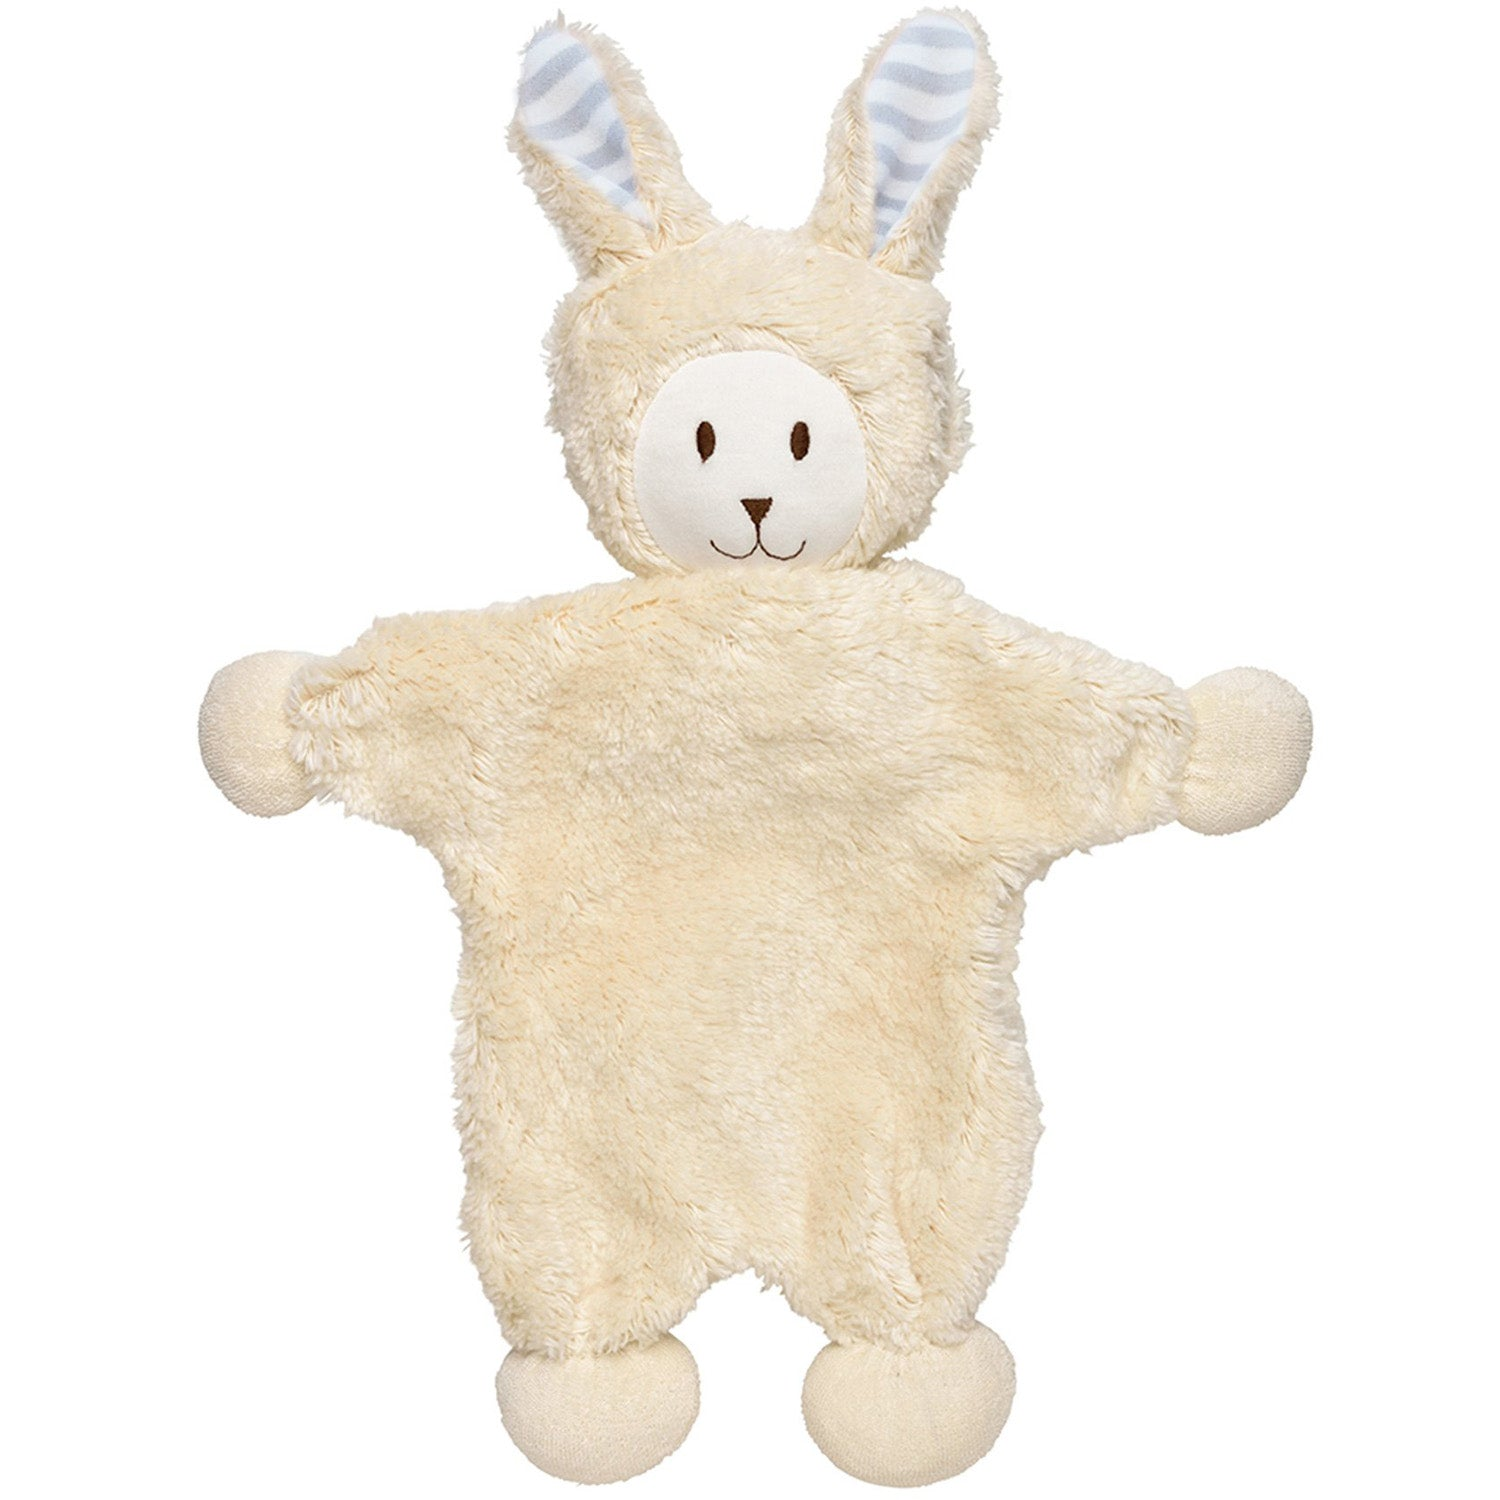 Under the Nile Organic Snuggle Bunny Toy - Grey Stripe Ears